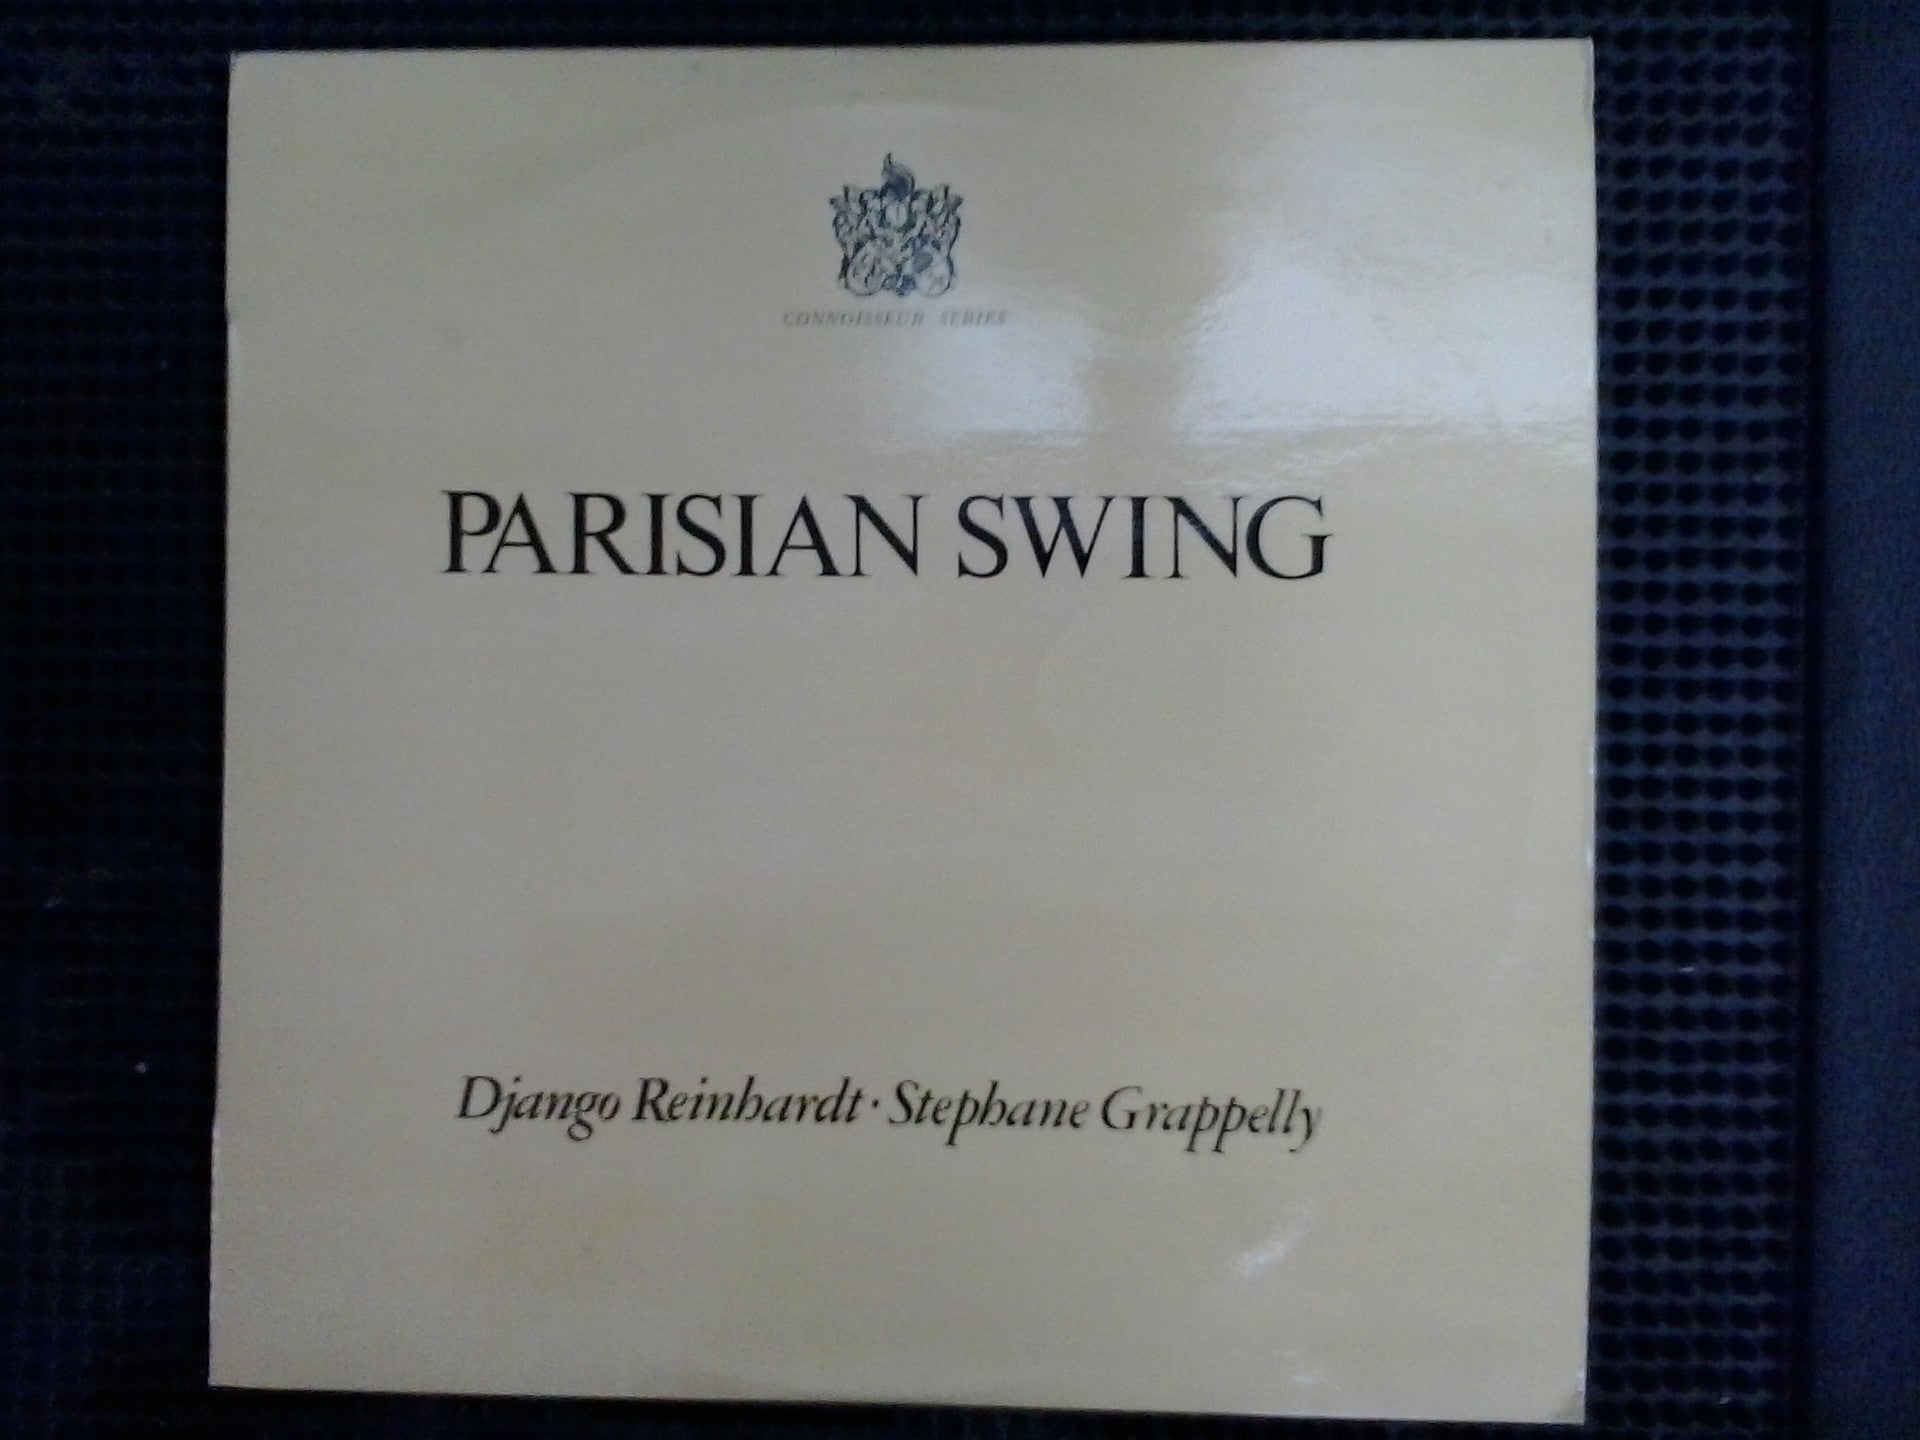 REINHARDT DJANGO STEPHANE GRAPPELLY-PARISIAN SWING LP EX VG+